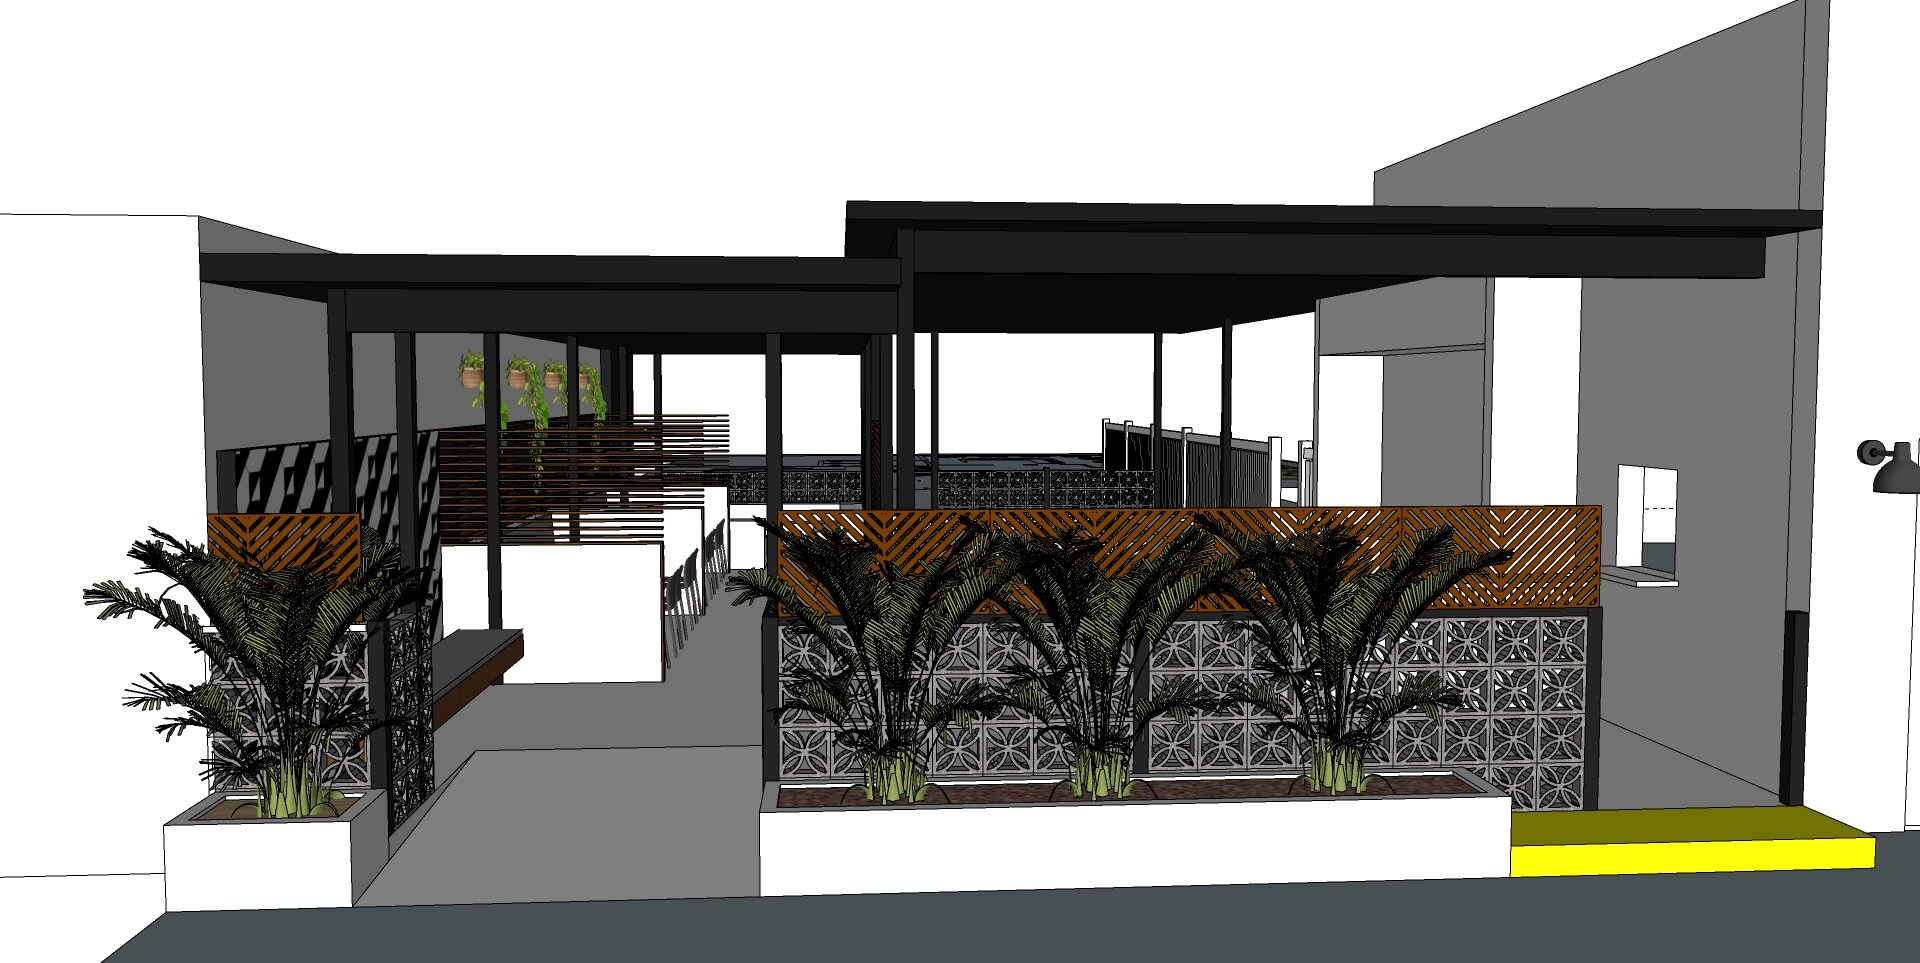 Wild Child will have a covered outdoor patio and bar for those hot summer days and nights